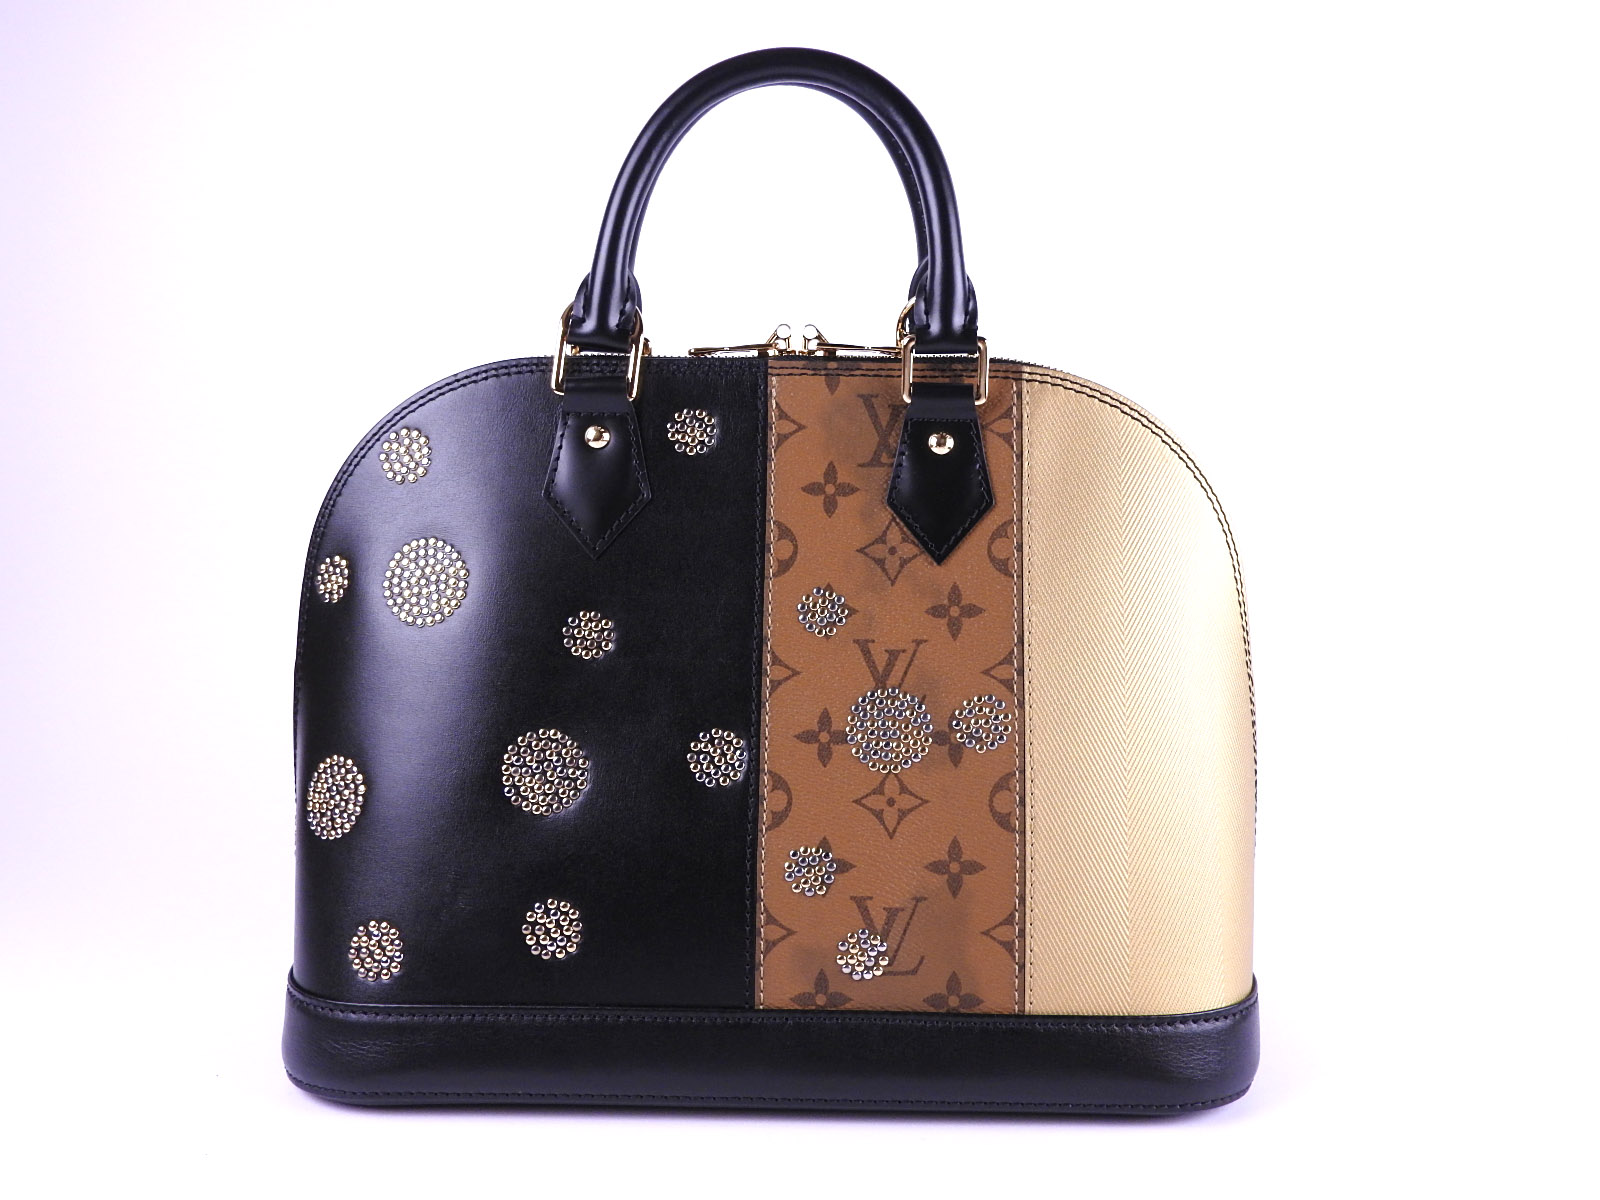 8ae5beb34b9 Auth LOUIS VUITTON Monogram Reverse Studded Alma PM Hand Bag Leather M43407  2017 Collection A-7978